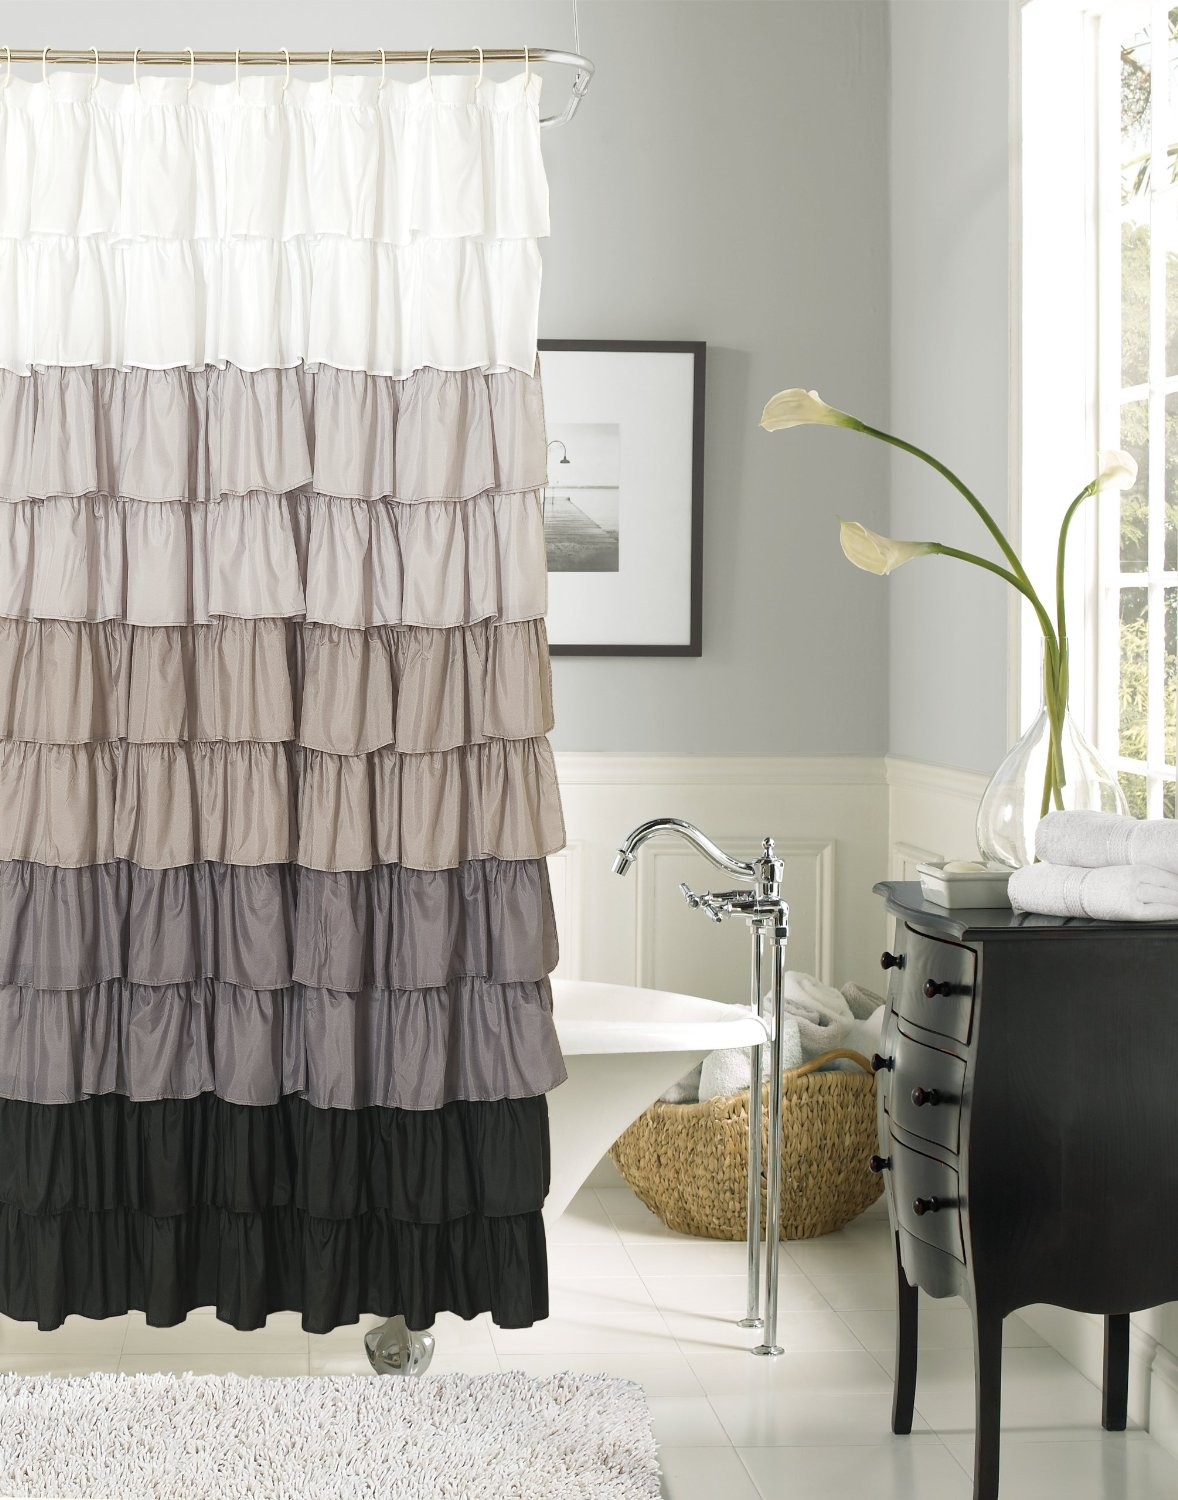 Get Quotations · Dainty Home Flamenco Ruffled Shower Curtain, 72 By  72 Inch, Black/White